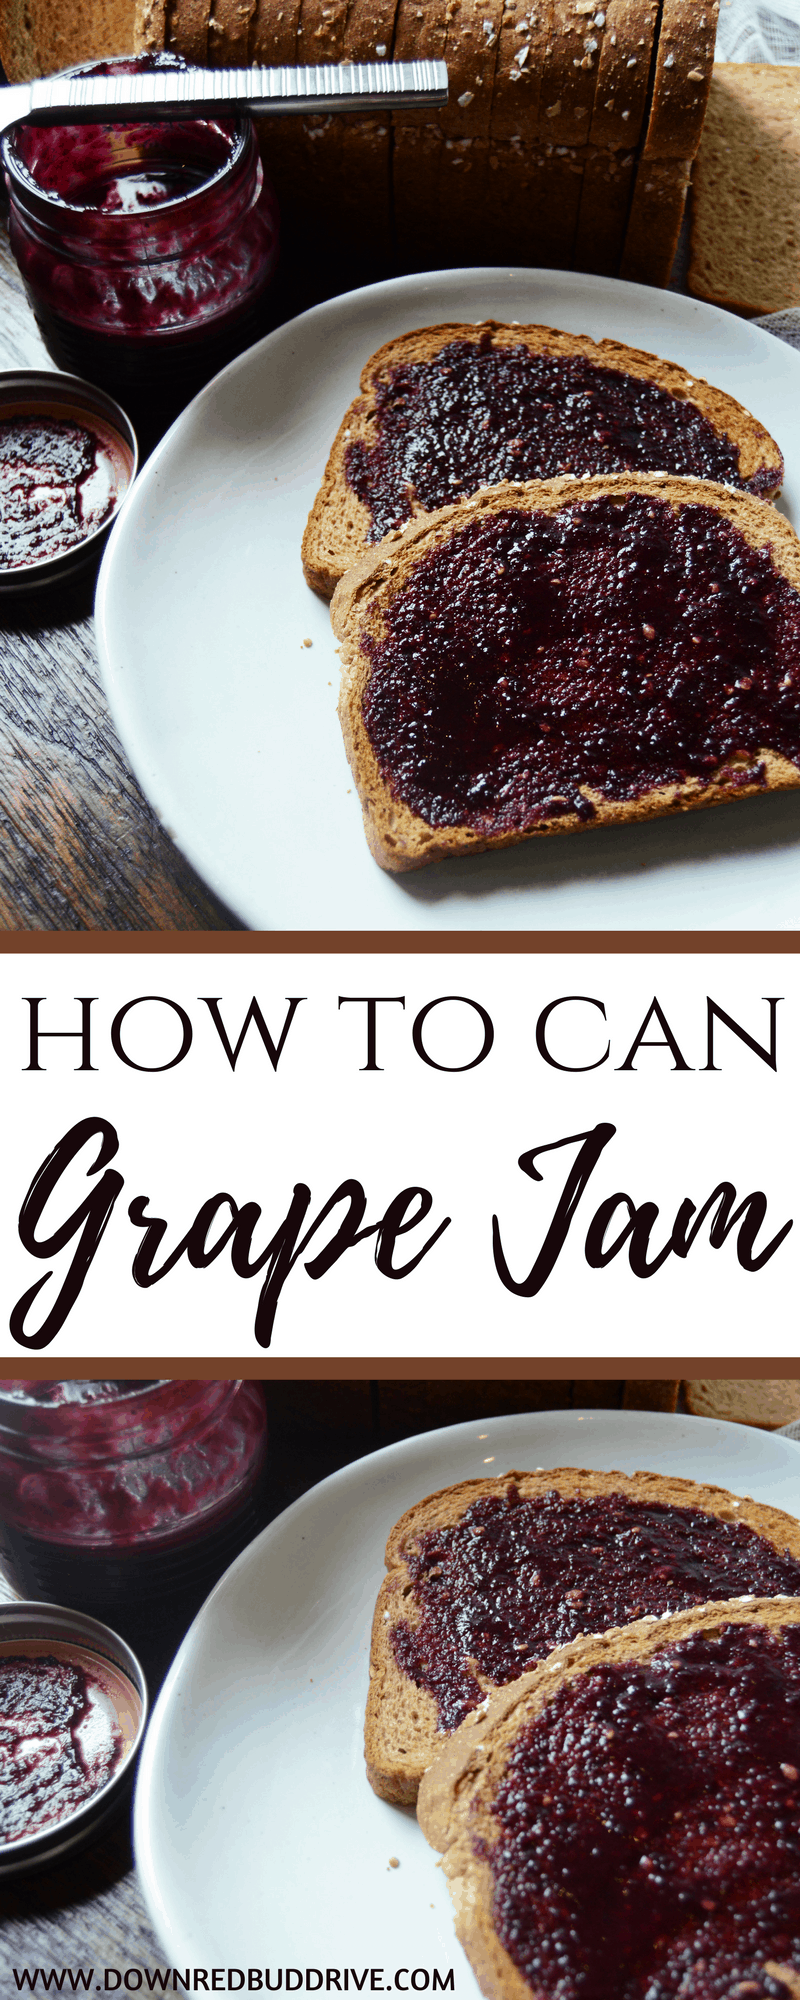 How To Can Grape Jam | How to Can | Grape Jam Recipe | Grape Jelly Recipe | Concord Grape Jam | Concord Grape Jelly | How to make Jelly | How to make Jam | Beginner Canning | Canning Tutorial | Easy Jam Recipe |